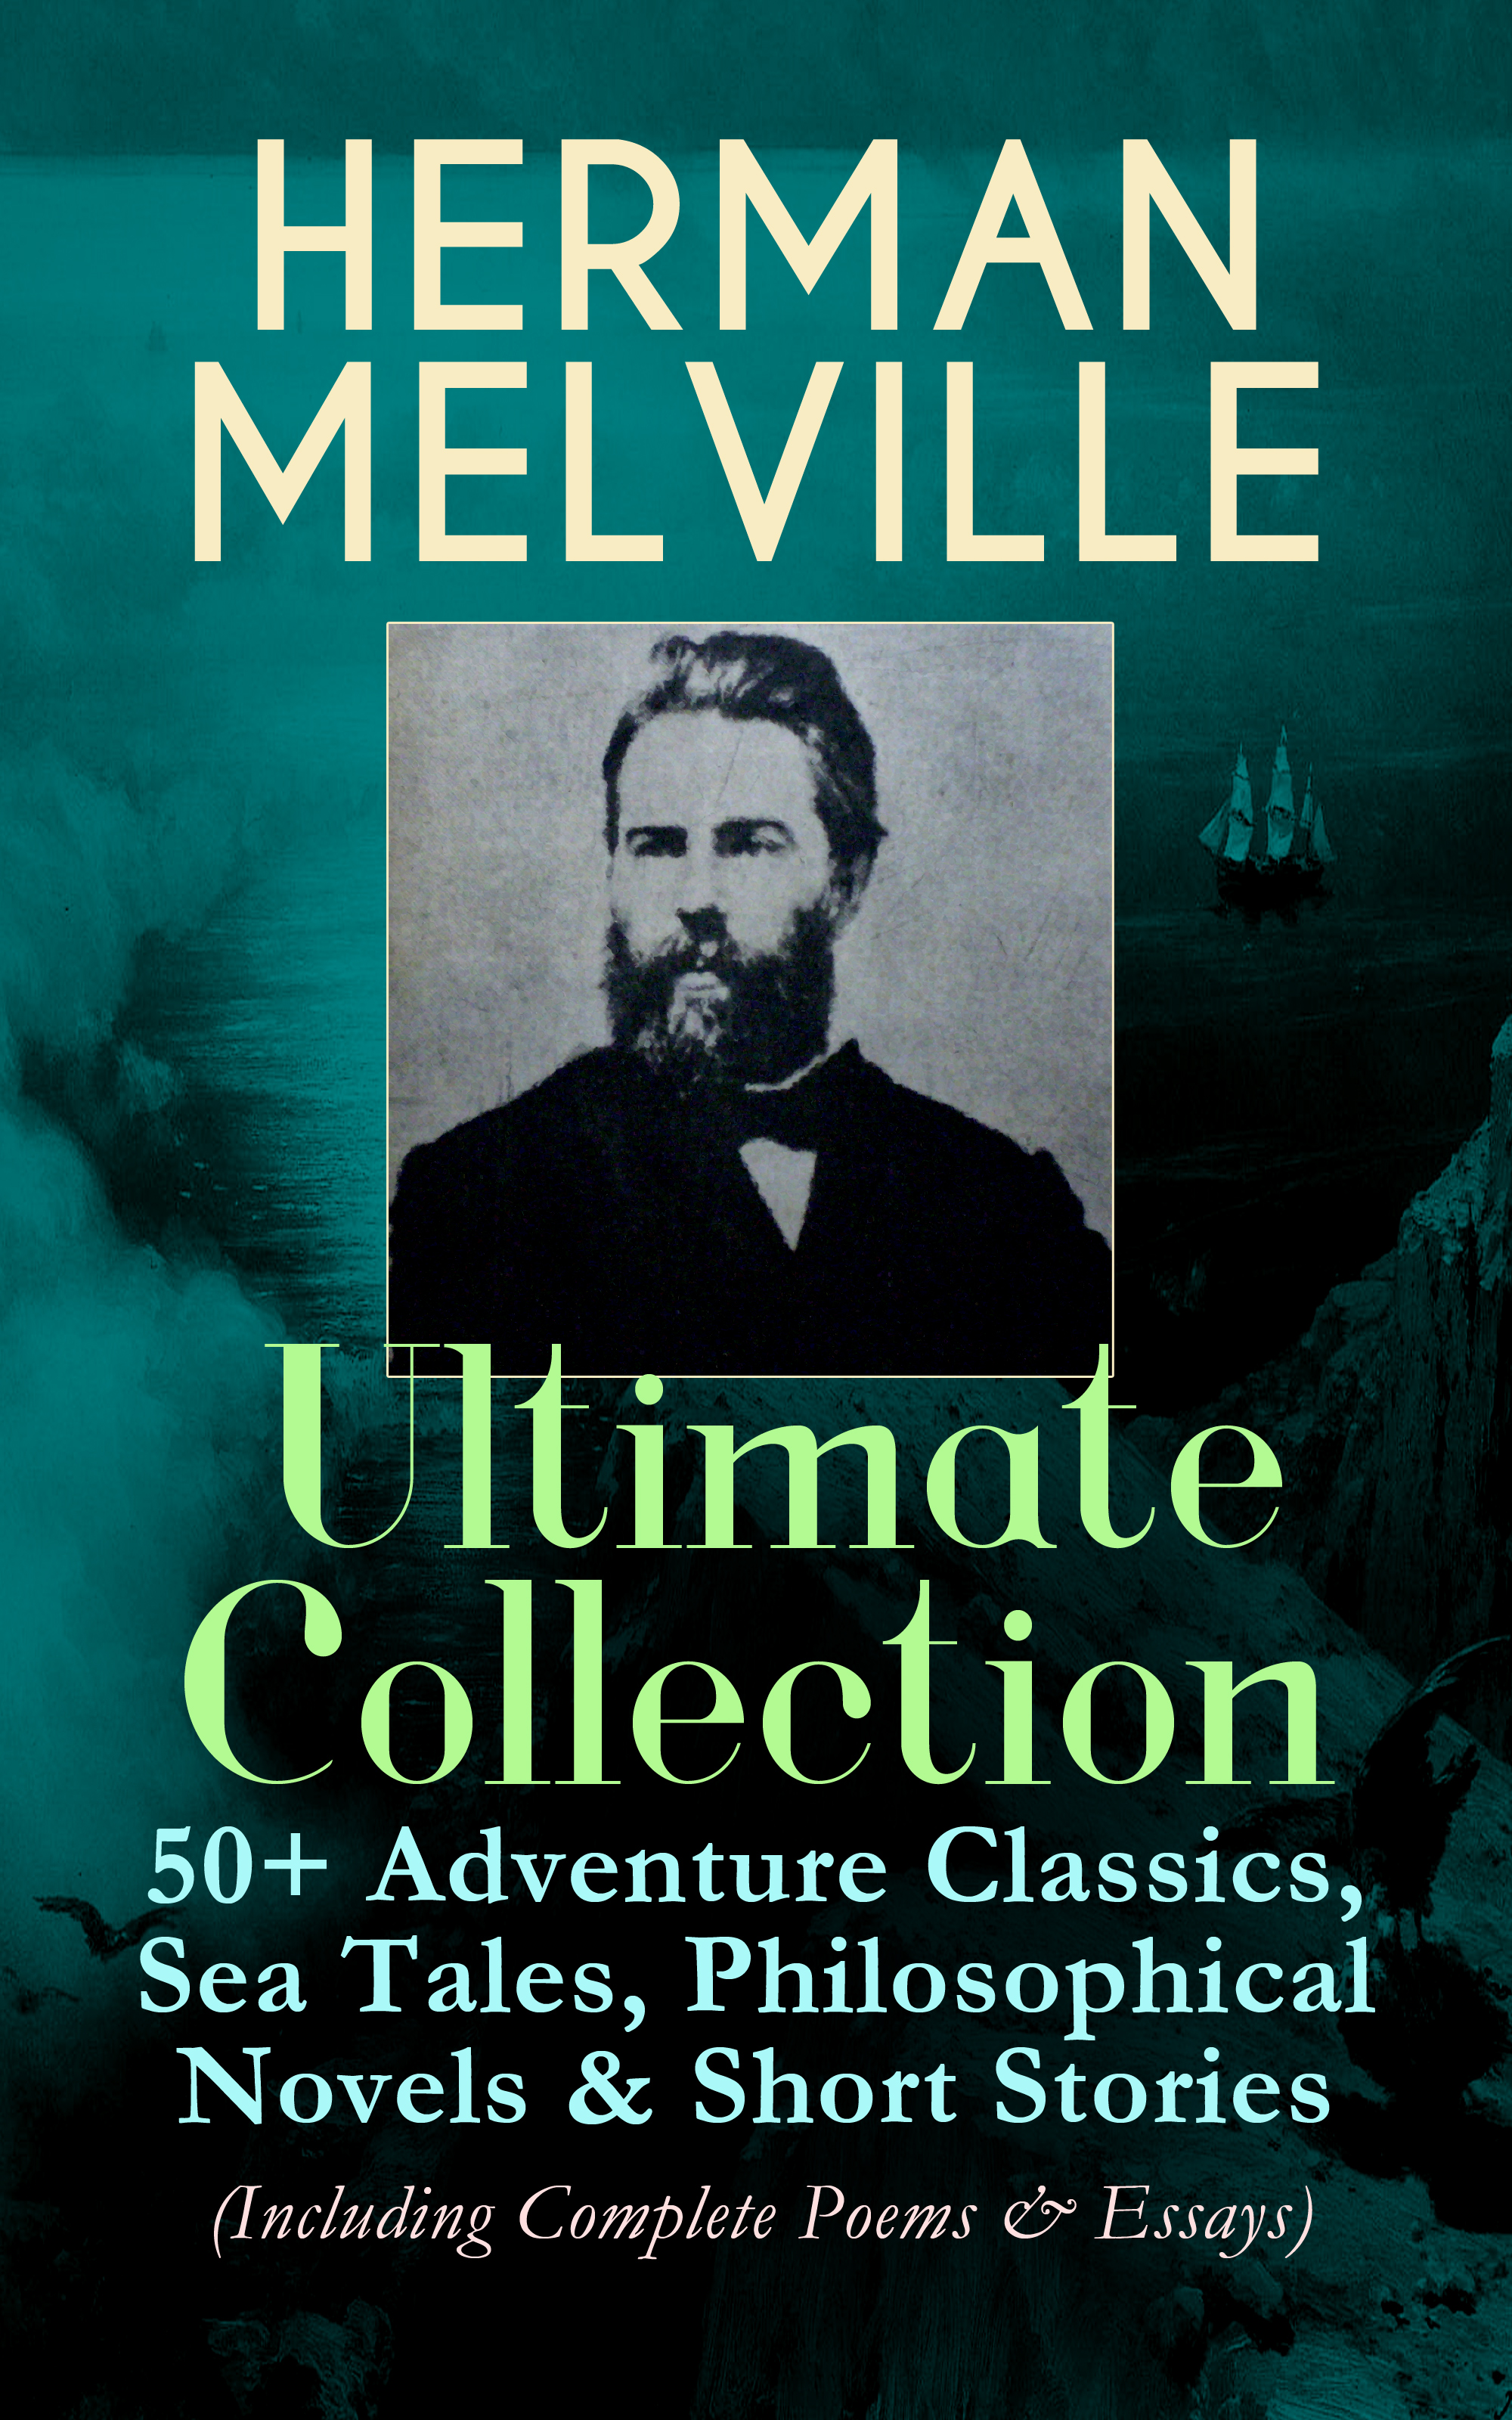 Herman Melville HERMAN MELVILLE Ultimate Collection: 50+ Adventure Classics, Philosophical Novels & Short Stories